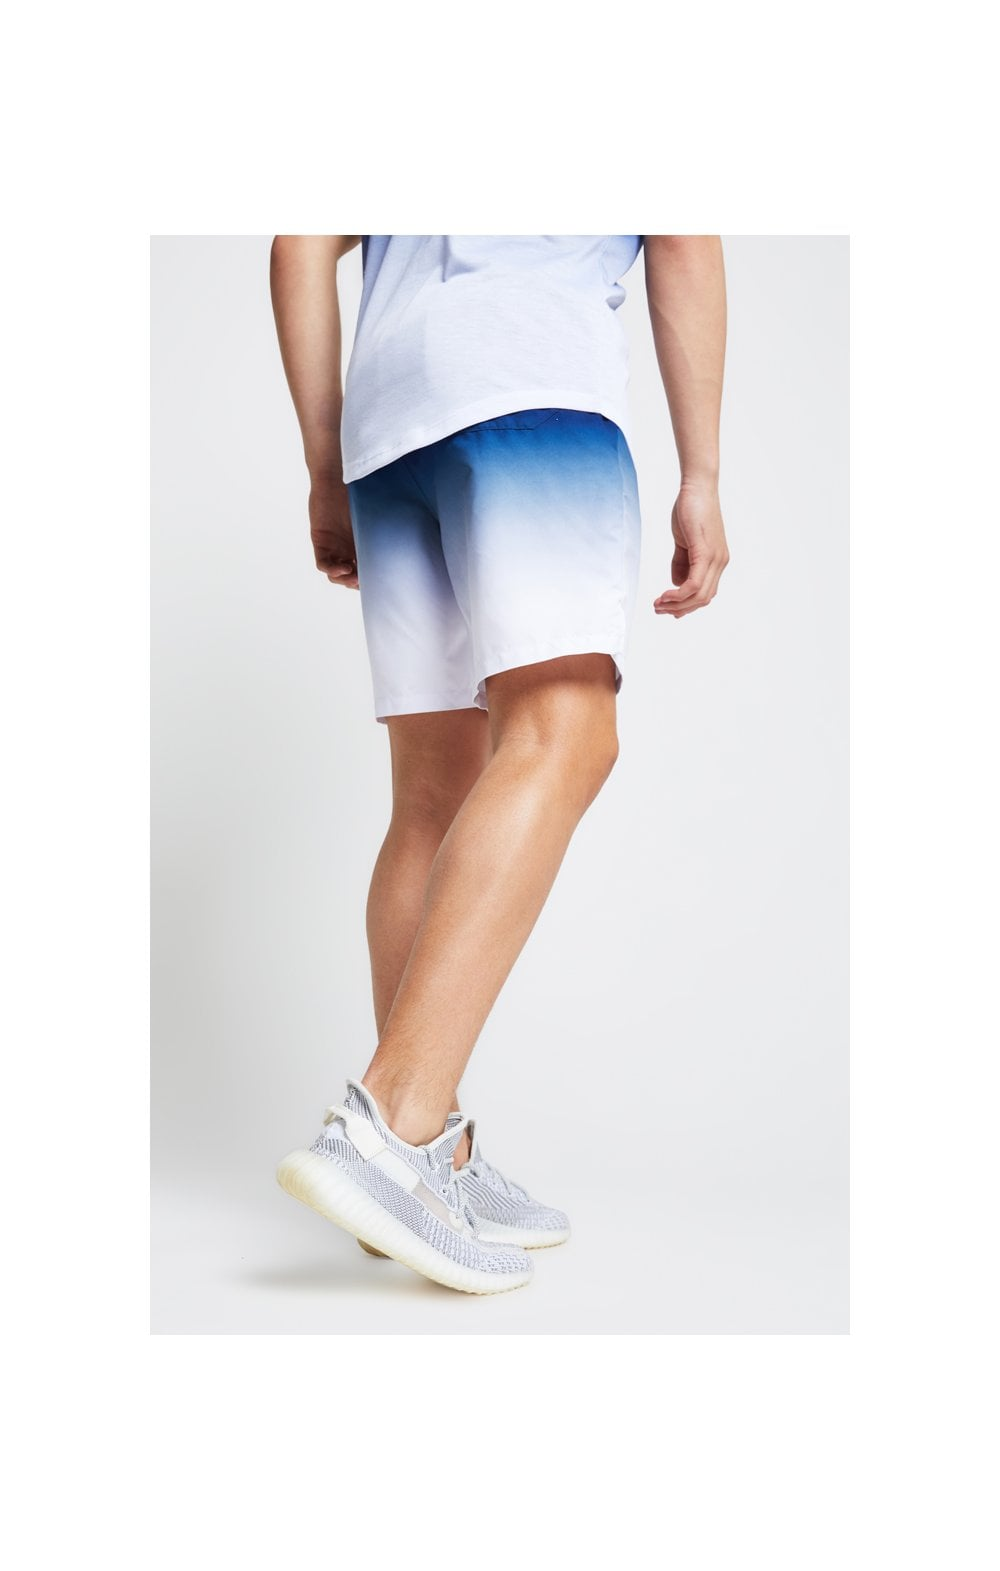 Load image into Gallery viewer, Illusive London Fade Swim Shorts - Navy & White (2)